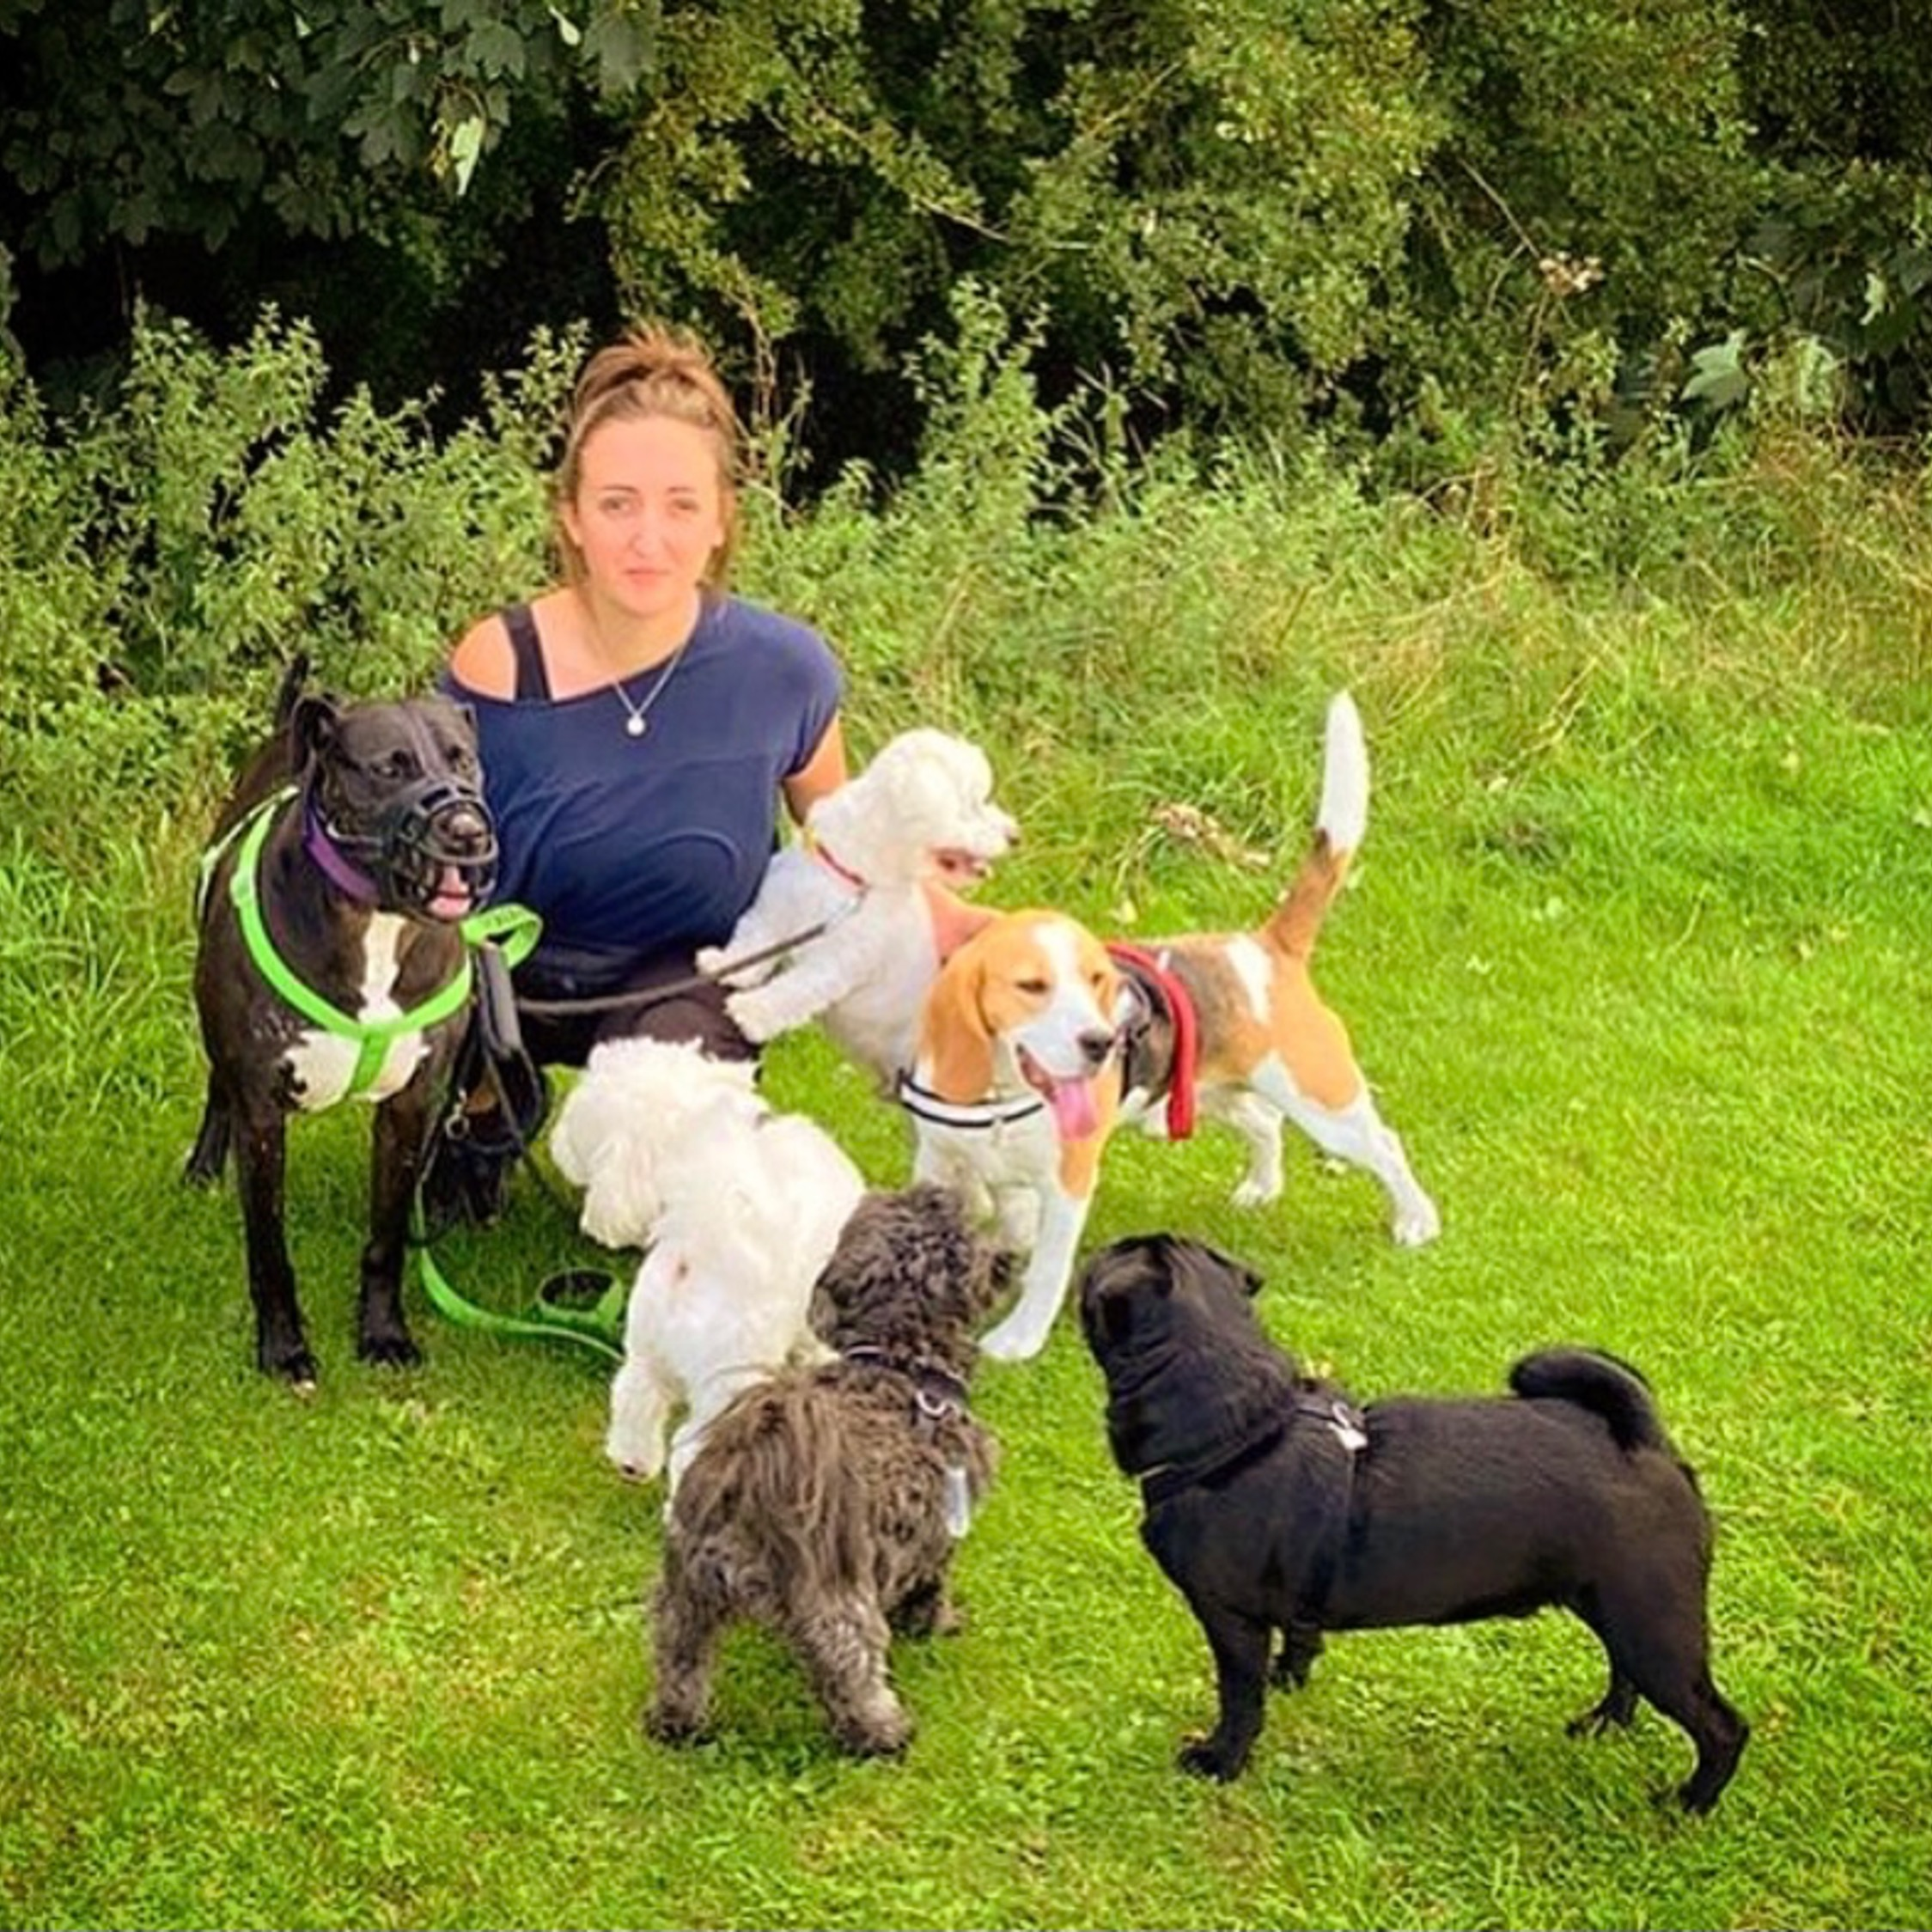 herts hiking hounds dog walking walker and training abbots kings langley hertfordshire pet photography6